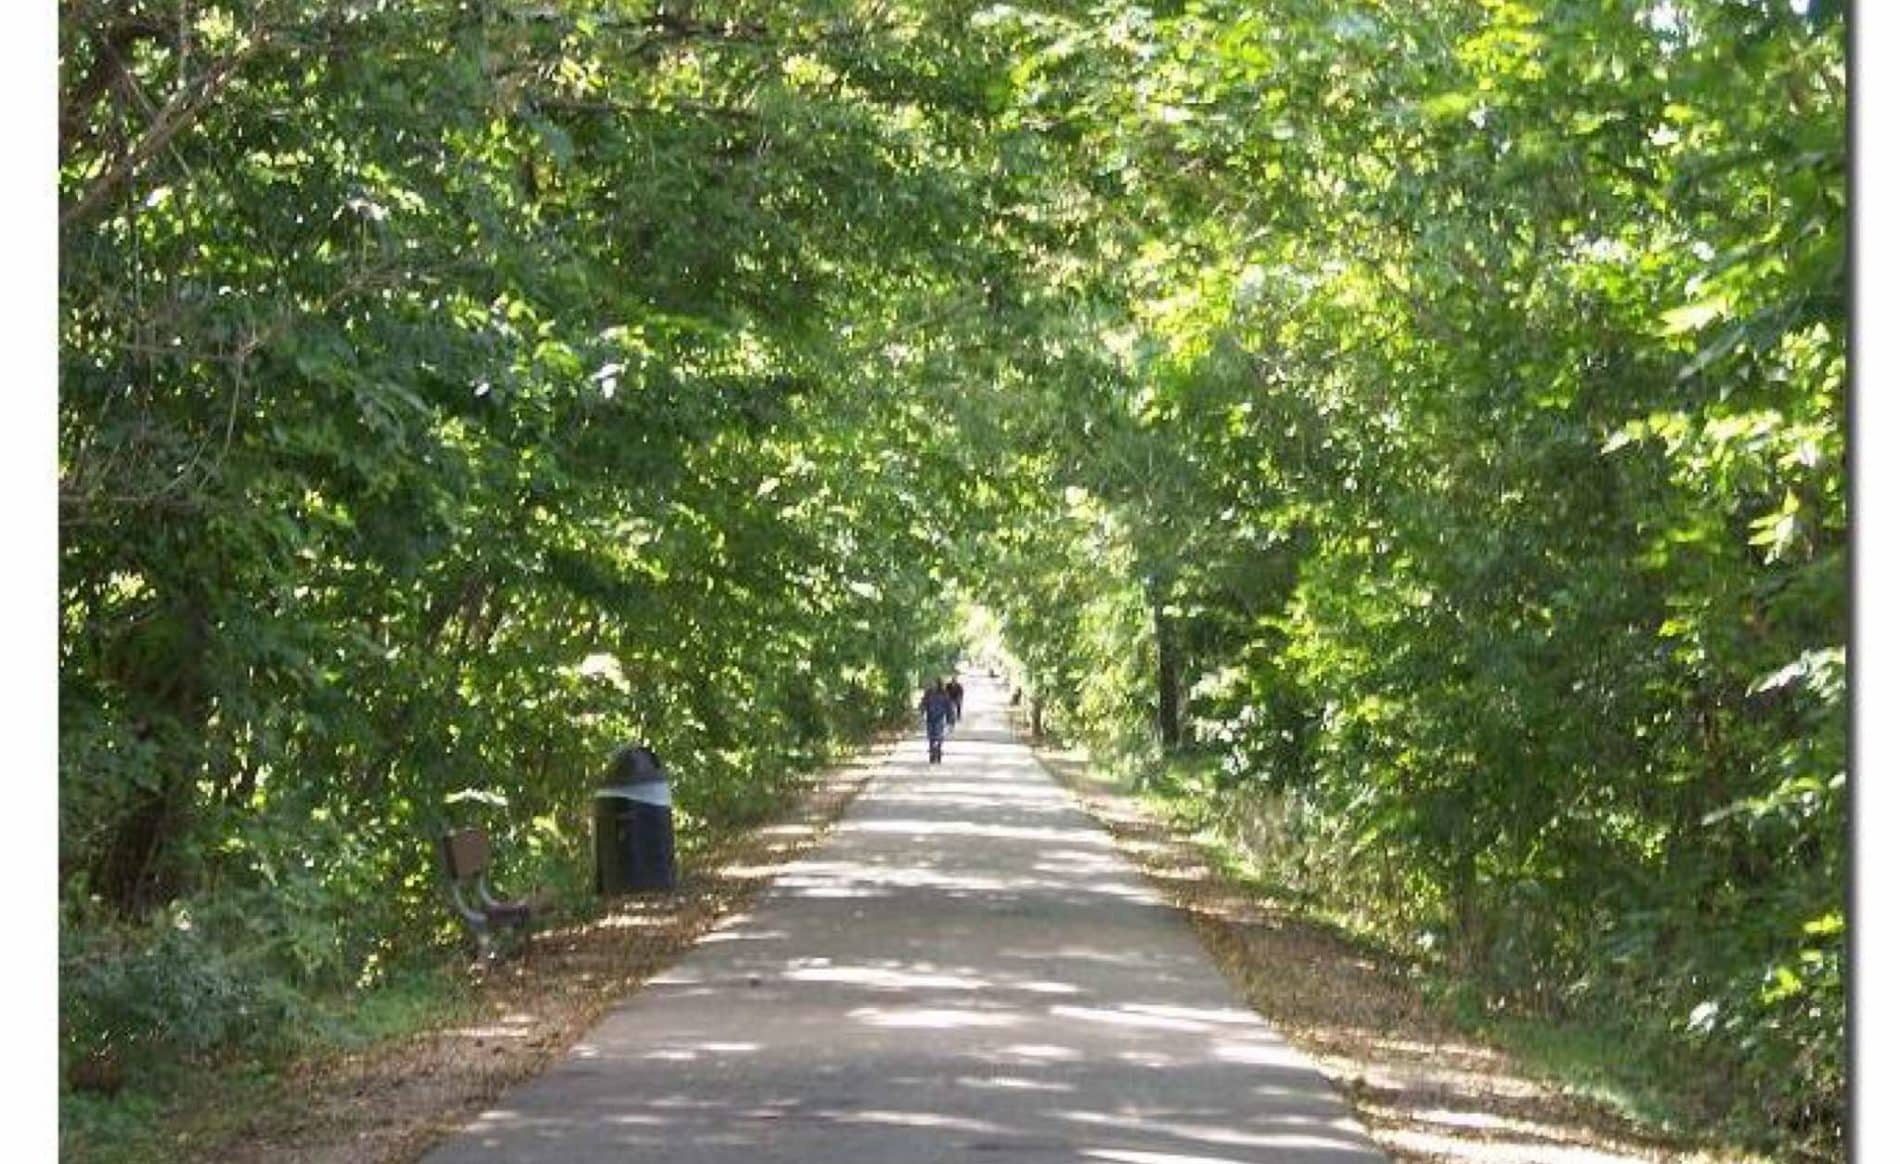 Wide paved trail surrounded by lush green trees